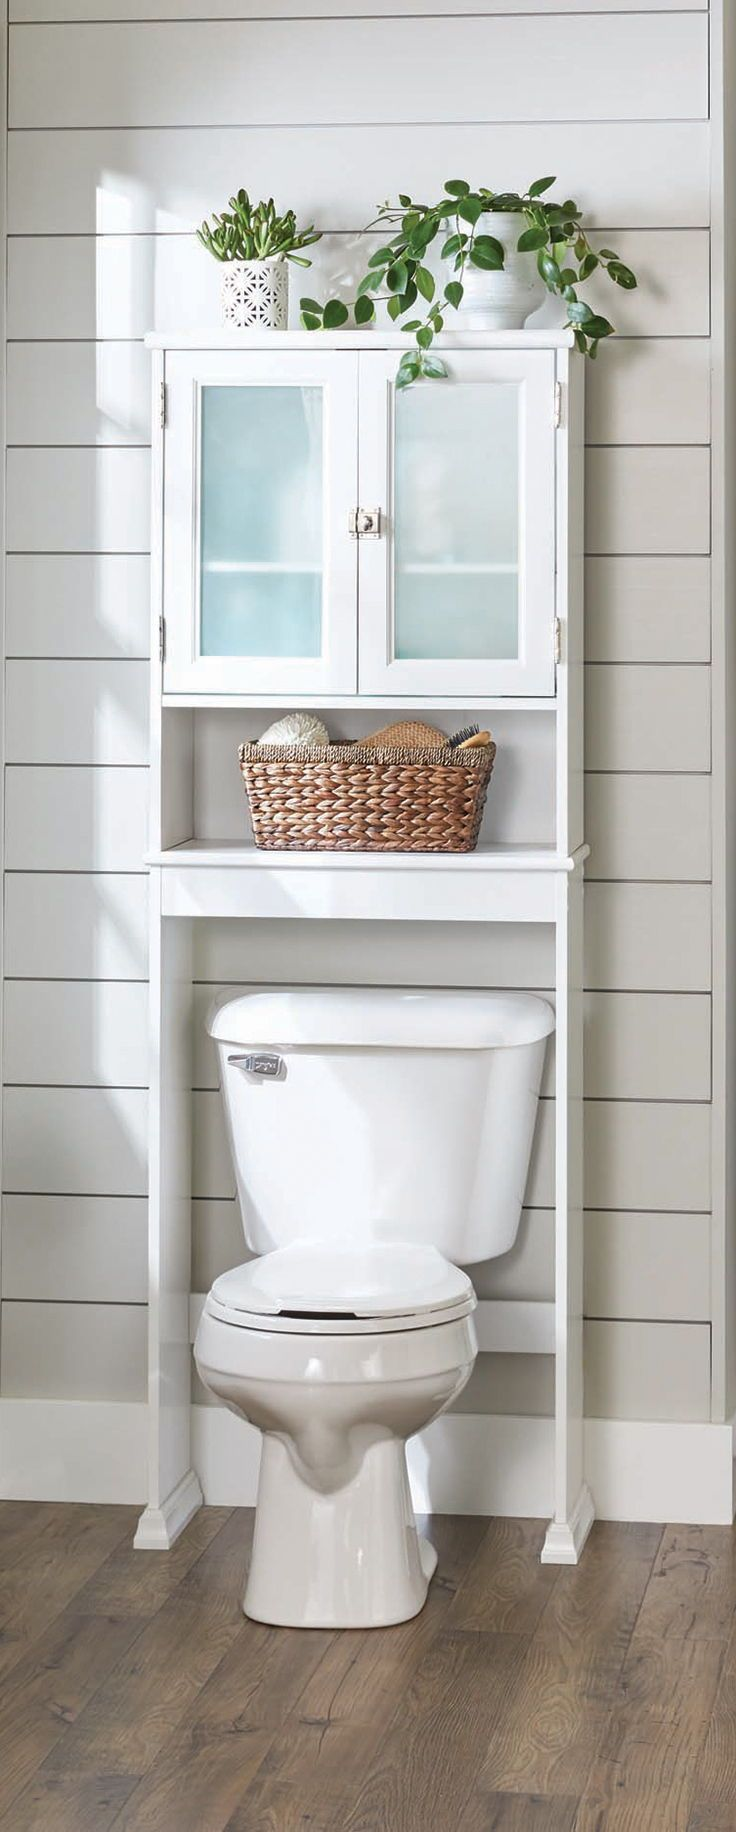 a2e480fe9496cd7b36273344fa62f634 - Better Homes And Gardens Over The Toilet Bathroom Space Saver